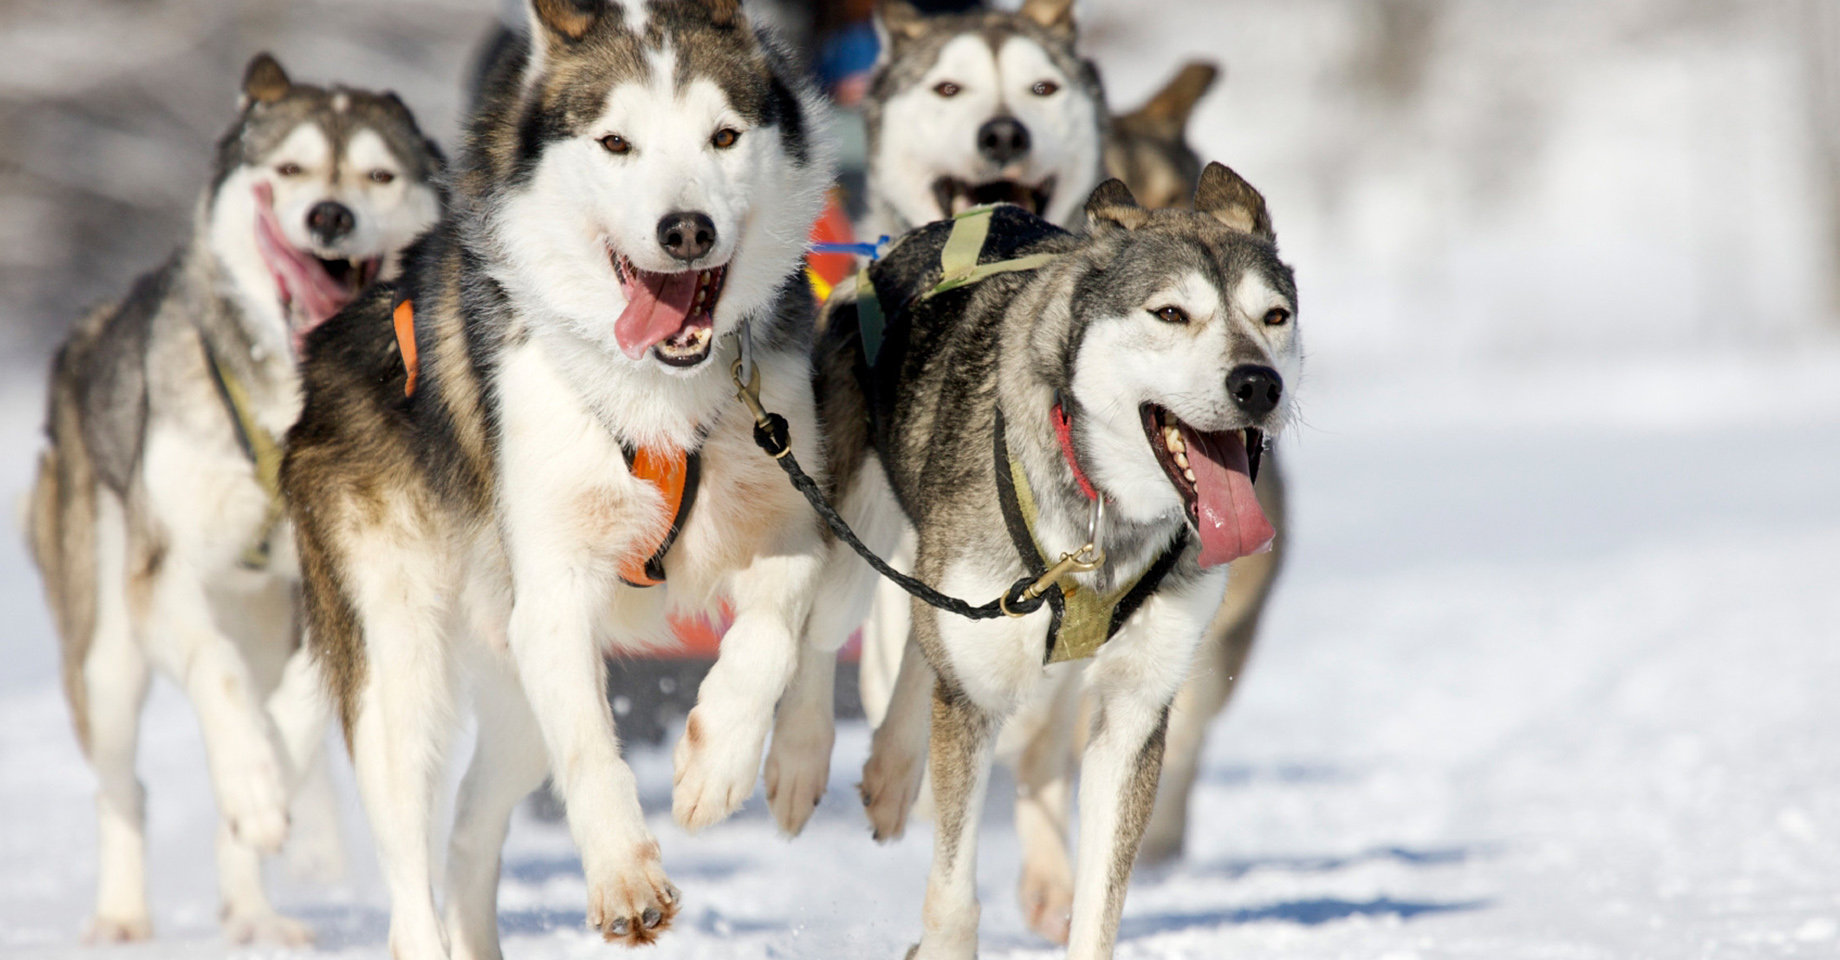 A team of huskies pulling a sled